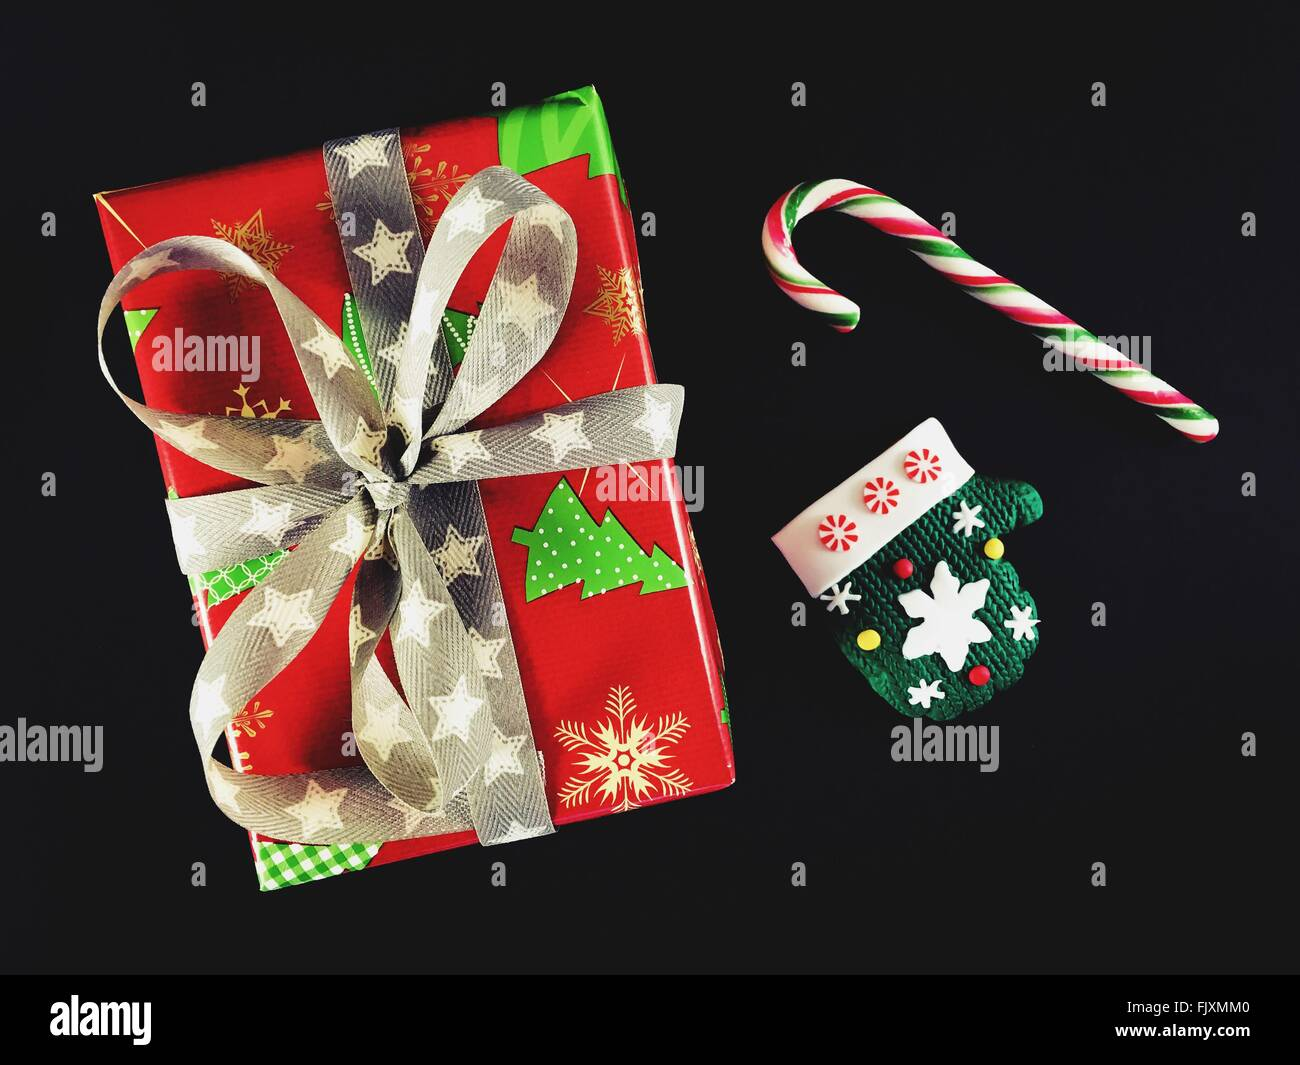 Directly Above Shot Of Gift With Glove Against Black Background - Stock Image